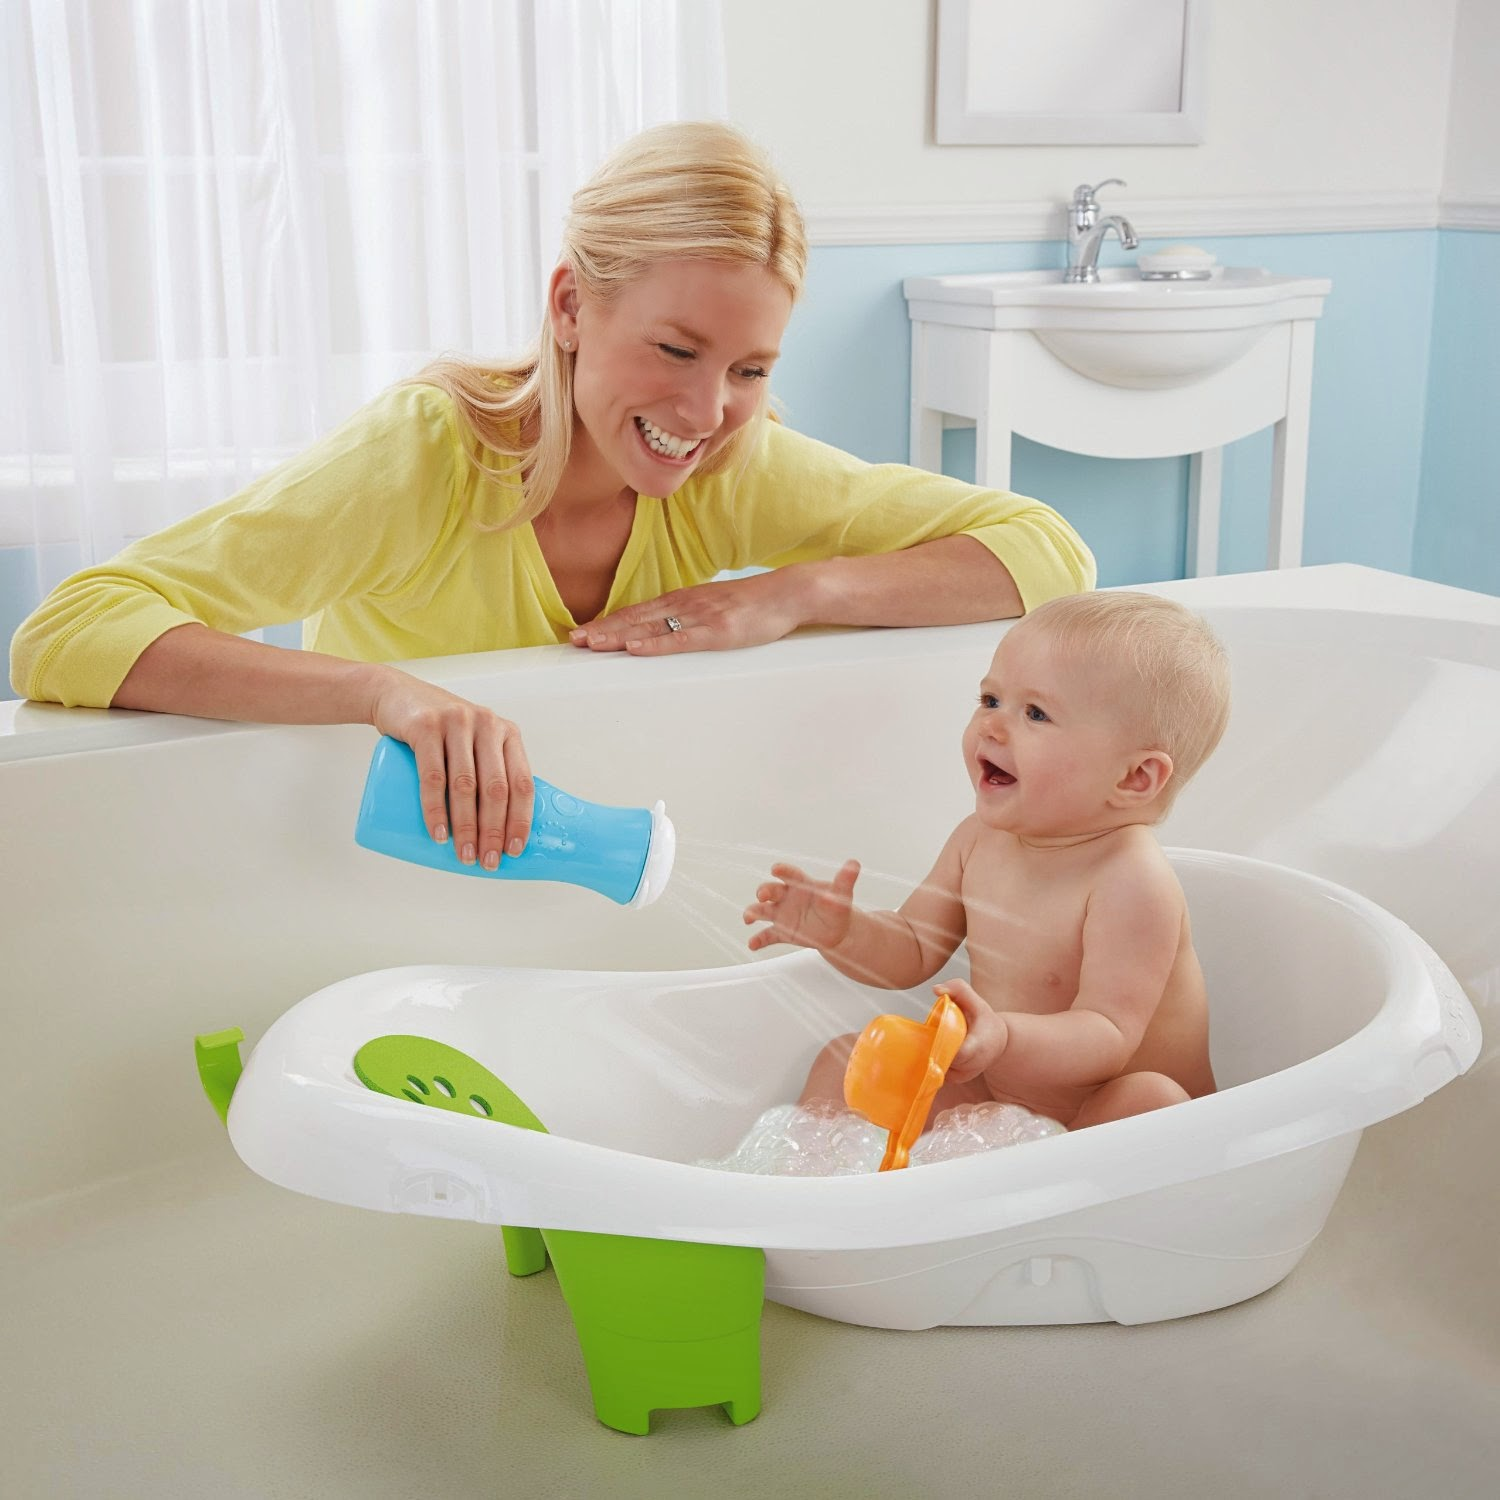 a secret world for all fisher price 4 in 1 sling n seat tub. Black Bedroom Furniture Sets. Home Design Ideas